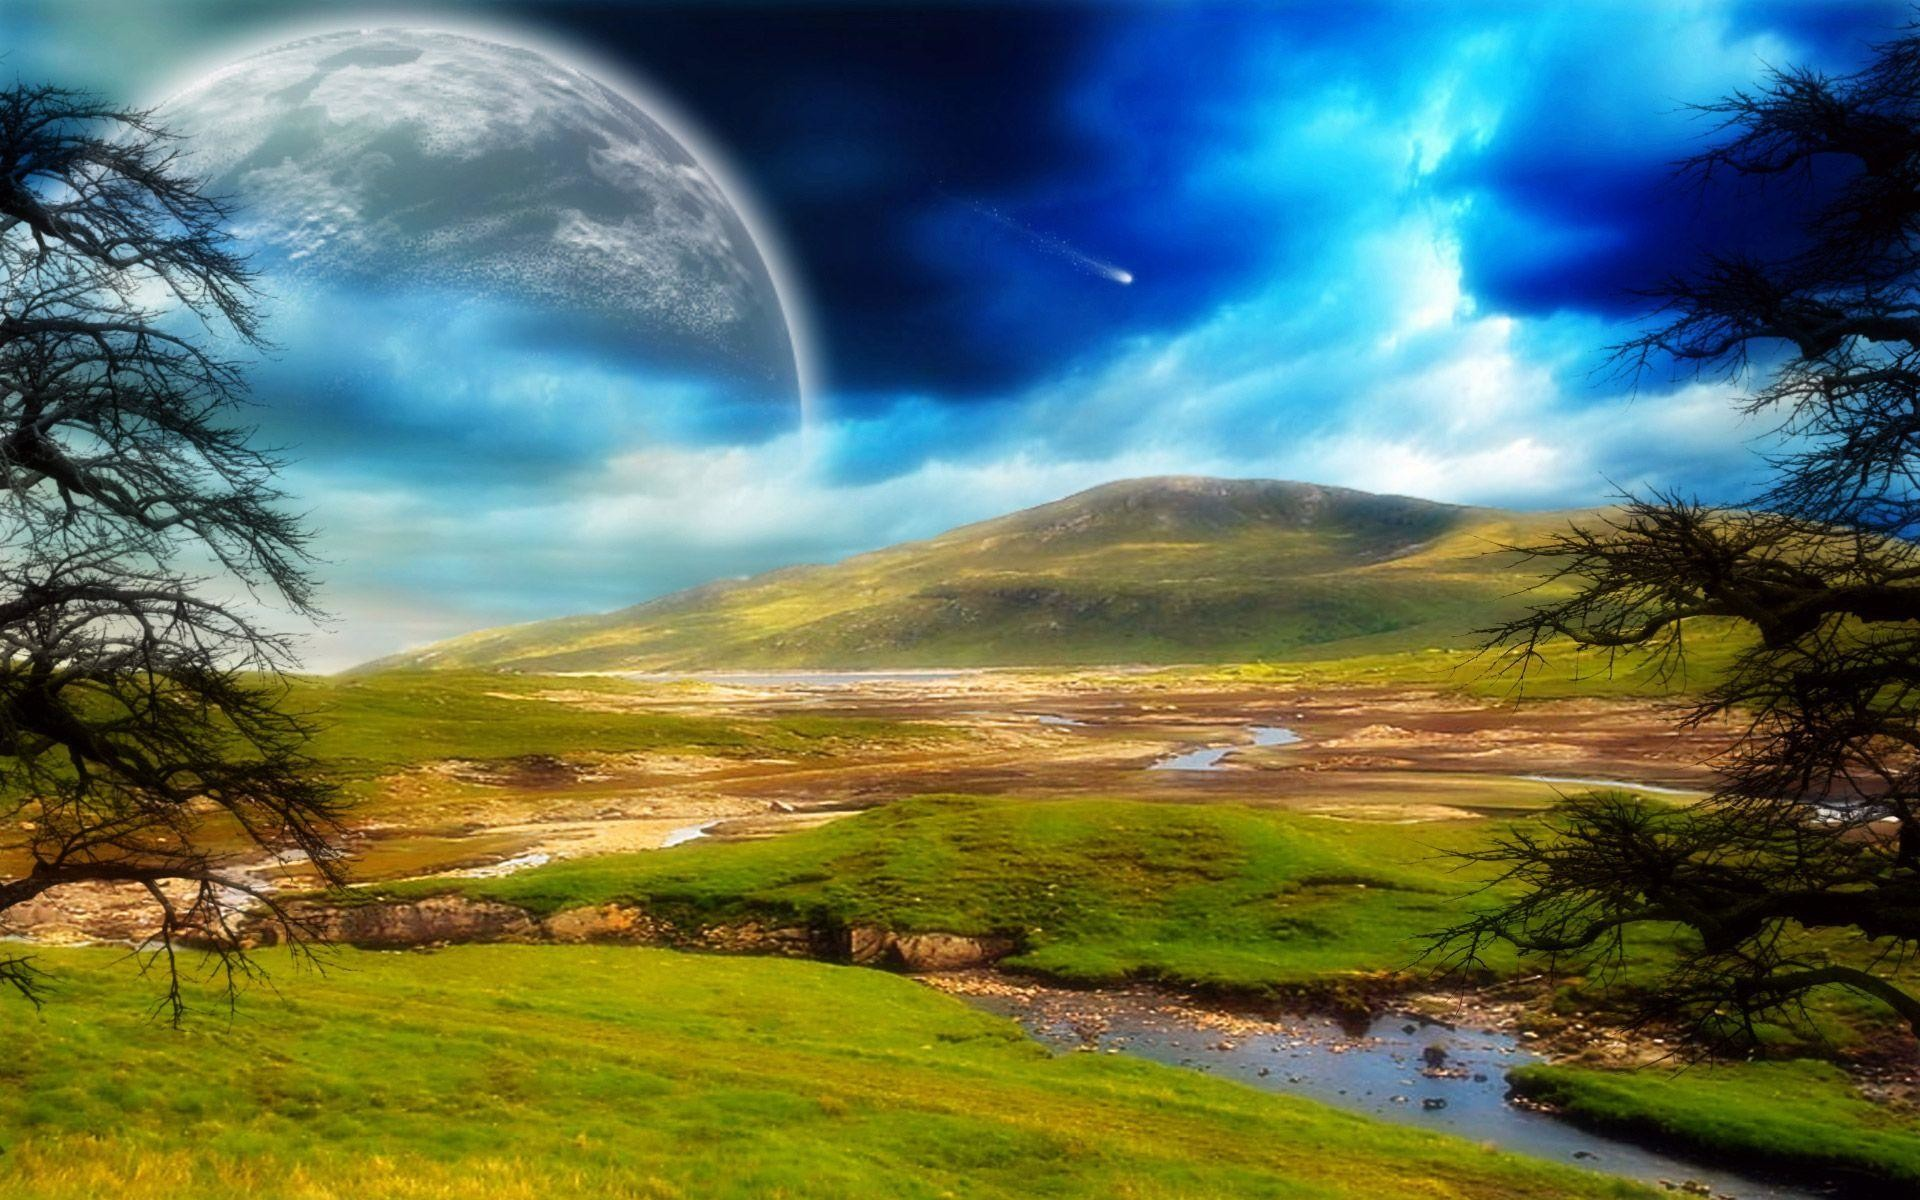 Nature Backgrounds For Desktop 65 Images